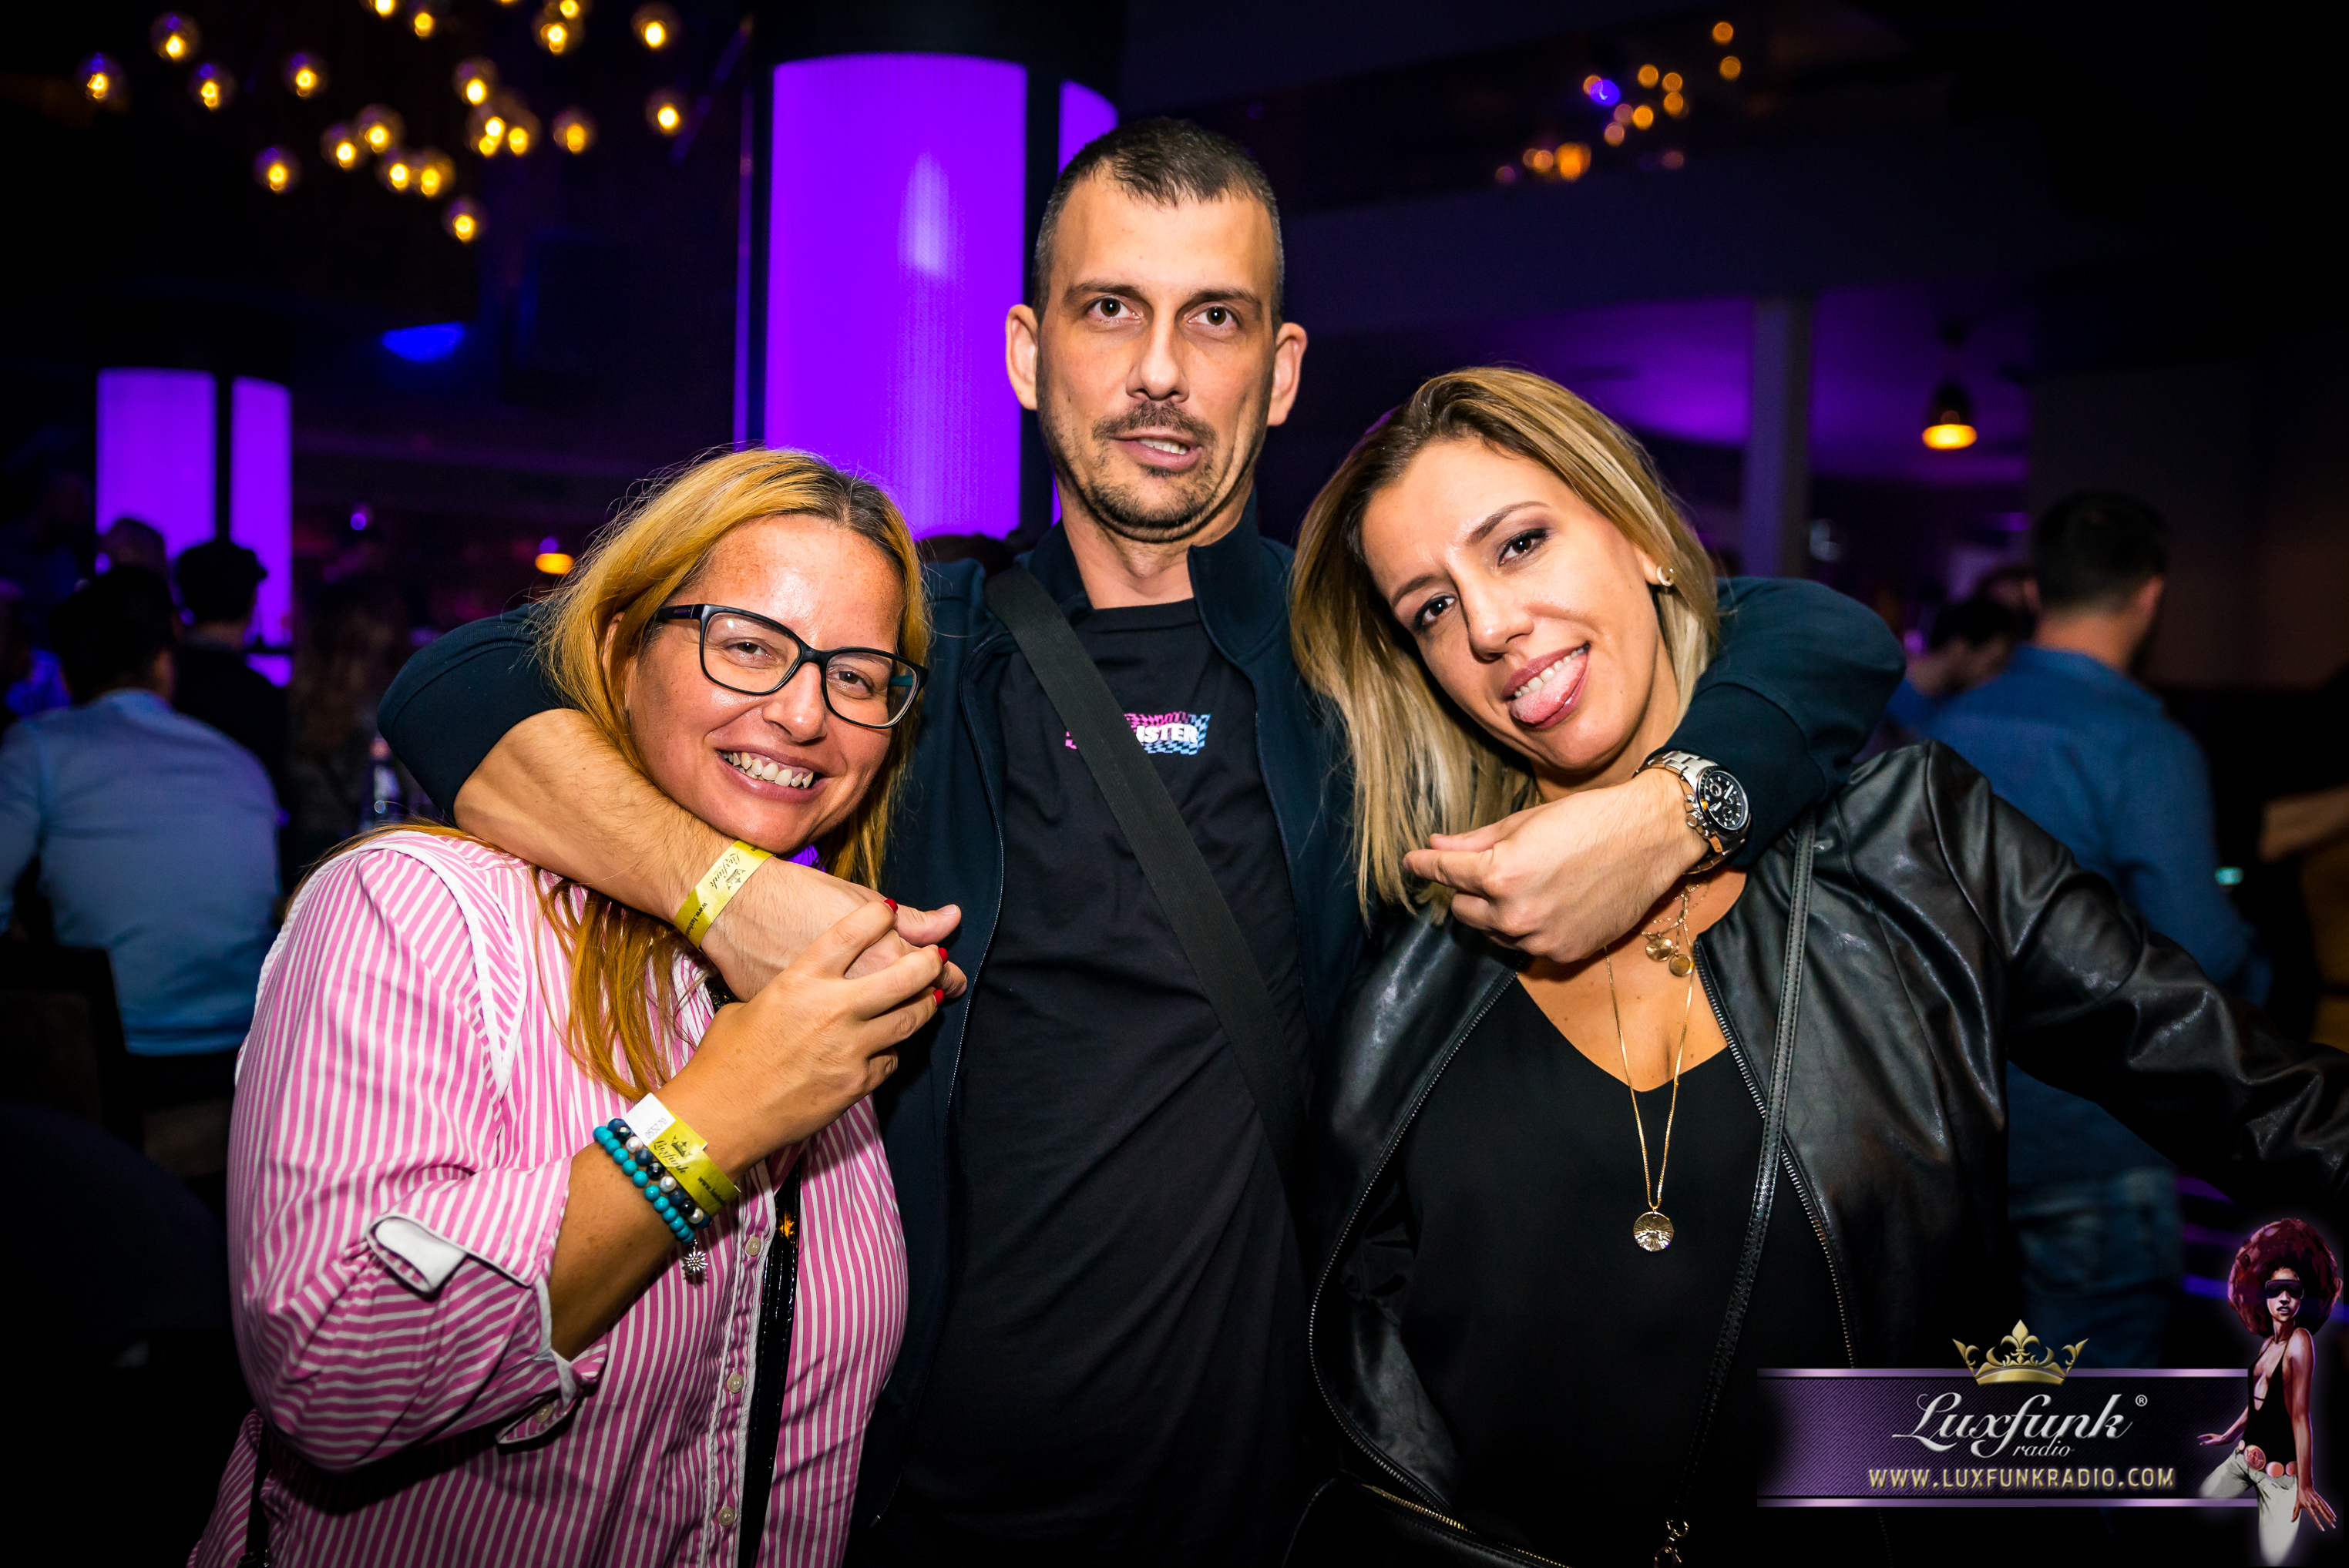 luxfunk-radio-funky-party-20191108-lock-budapest-1358